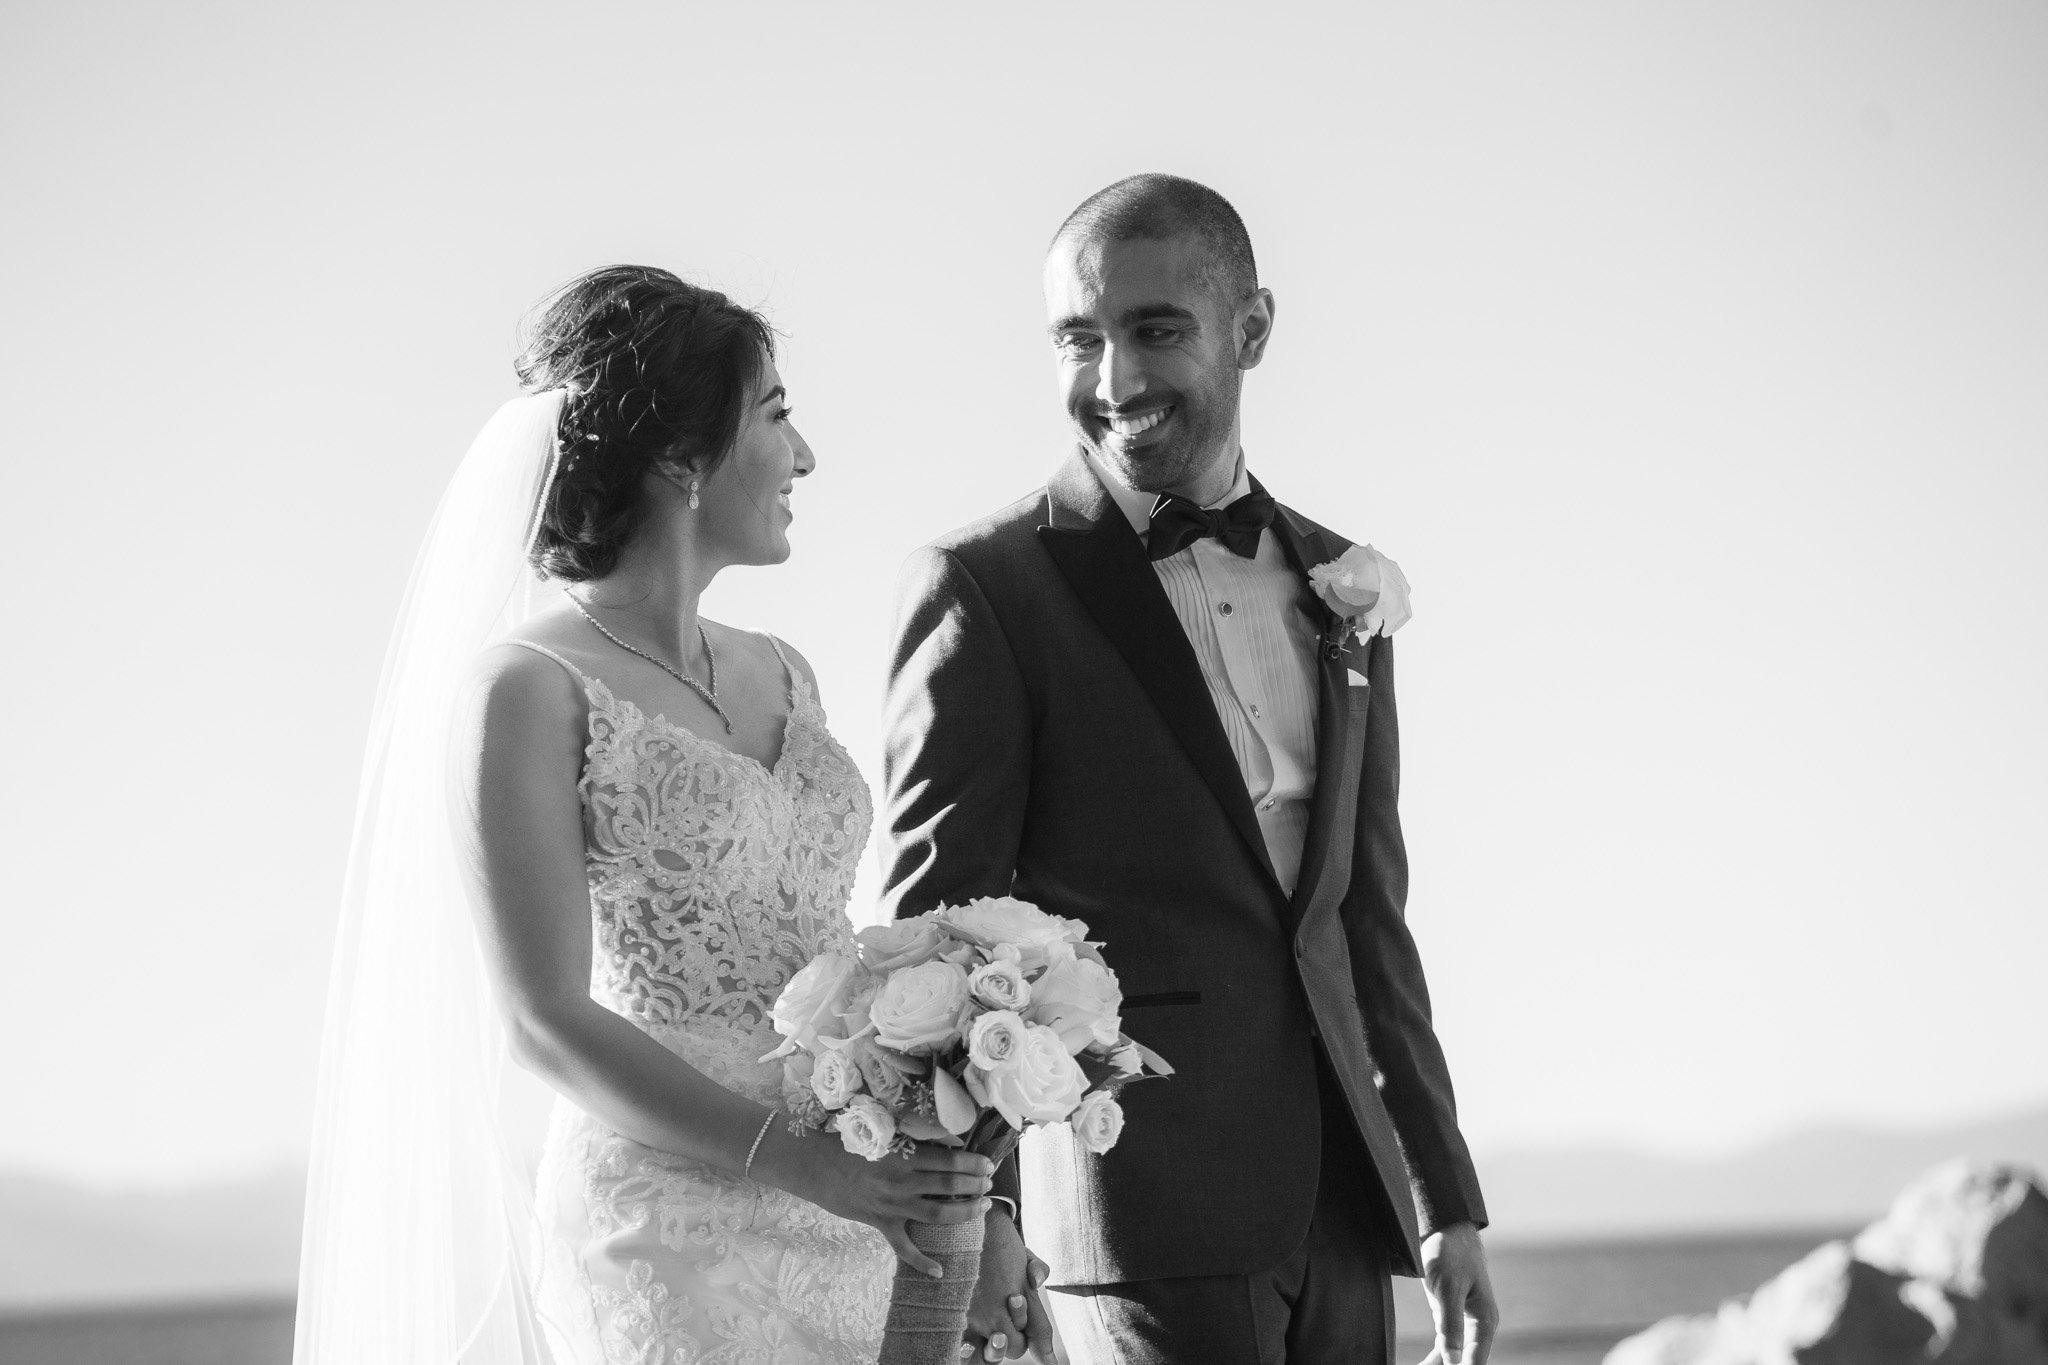 Groom smiles at the bride as they walk hand-in-hand after their marriage ceremony